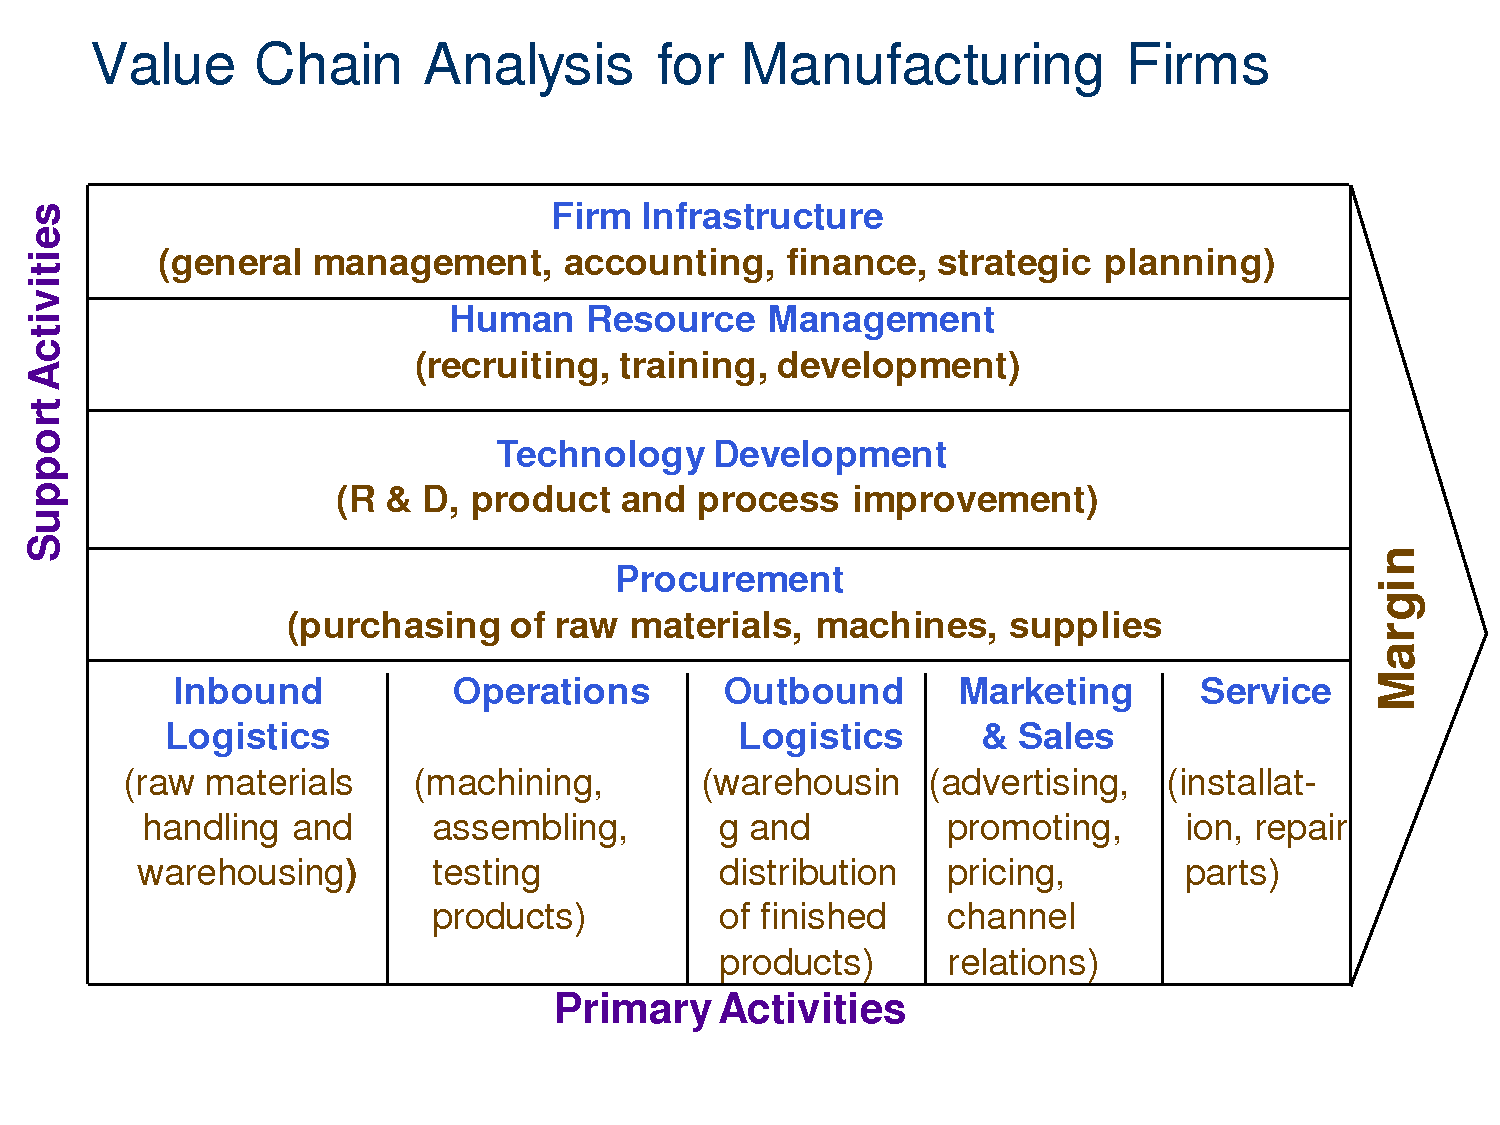 What Is Value Chain Analysis? Porter's Concept of Value Chain Analysis. Value chain analysis focuses on analyzing the internal activities of a business in an effort to understand costs, locate the activities that add the most value, and differentiate from the competition.